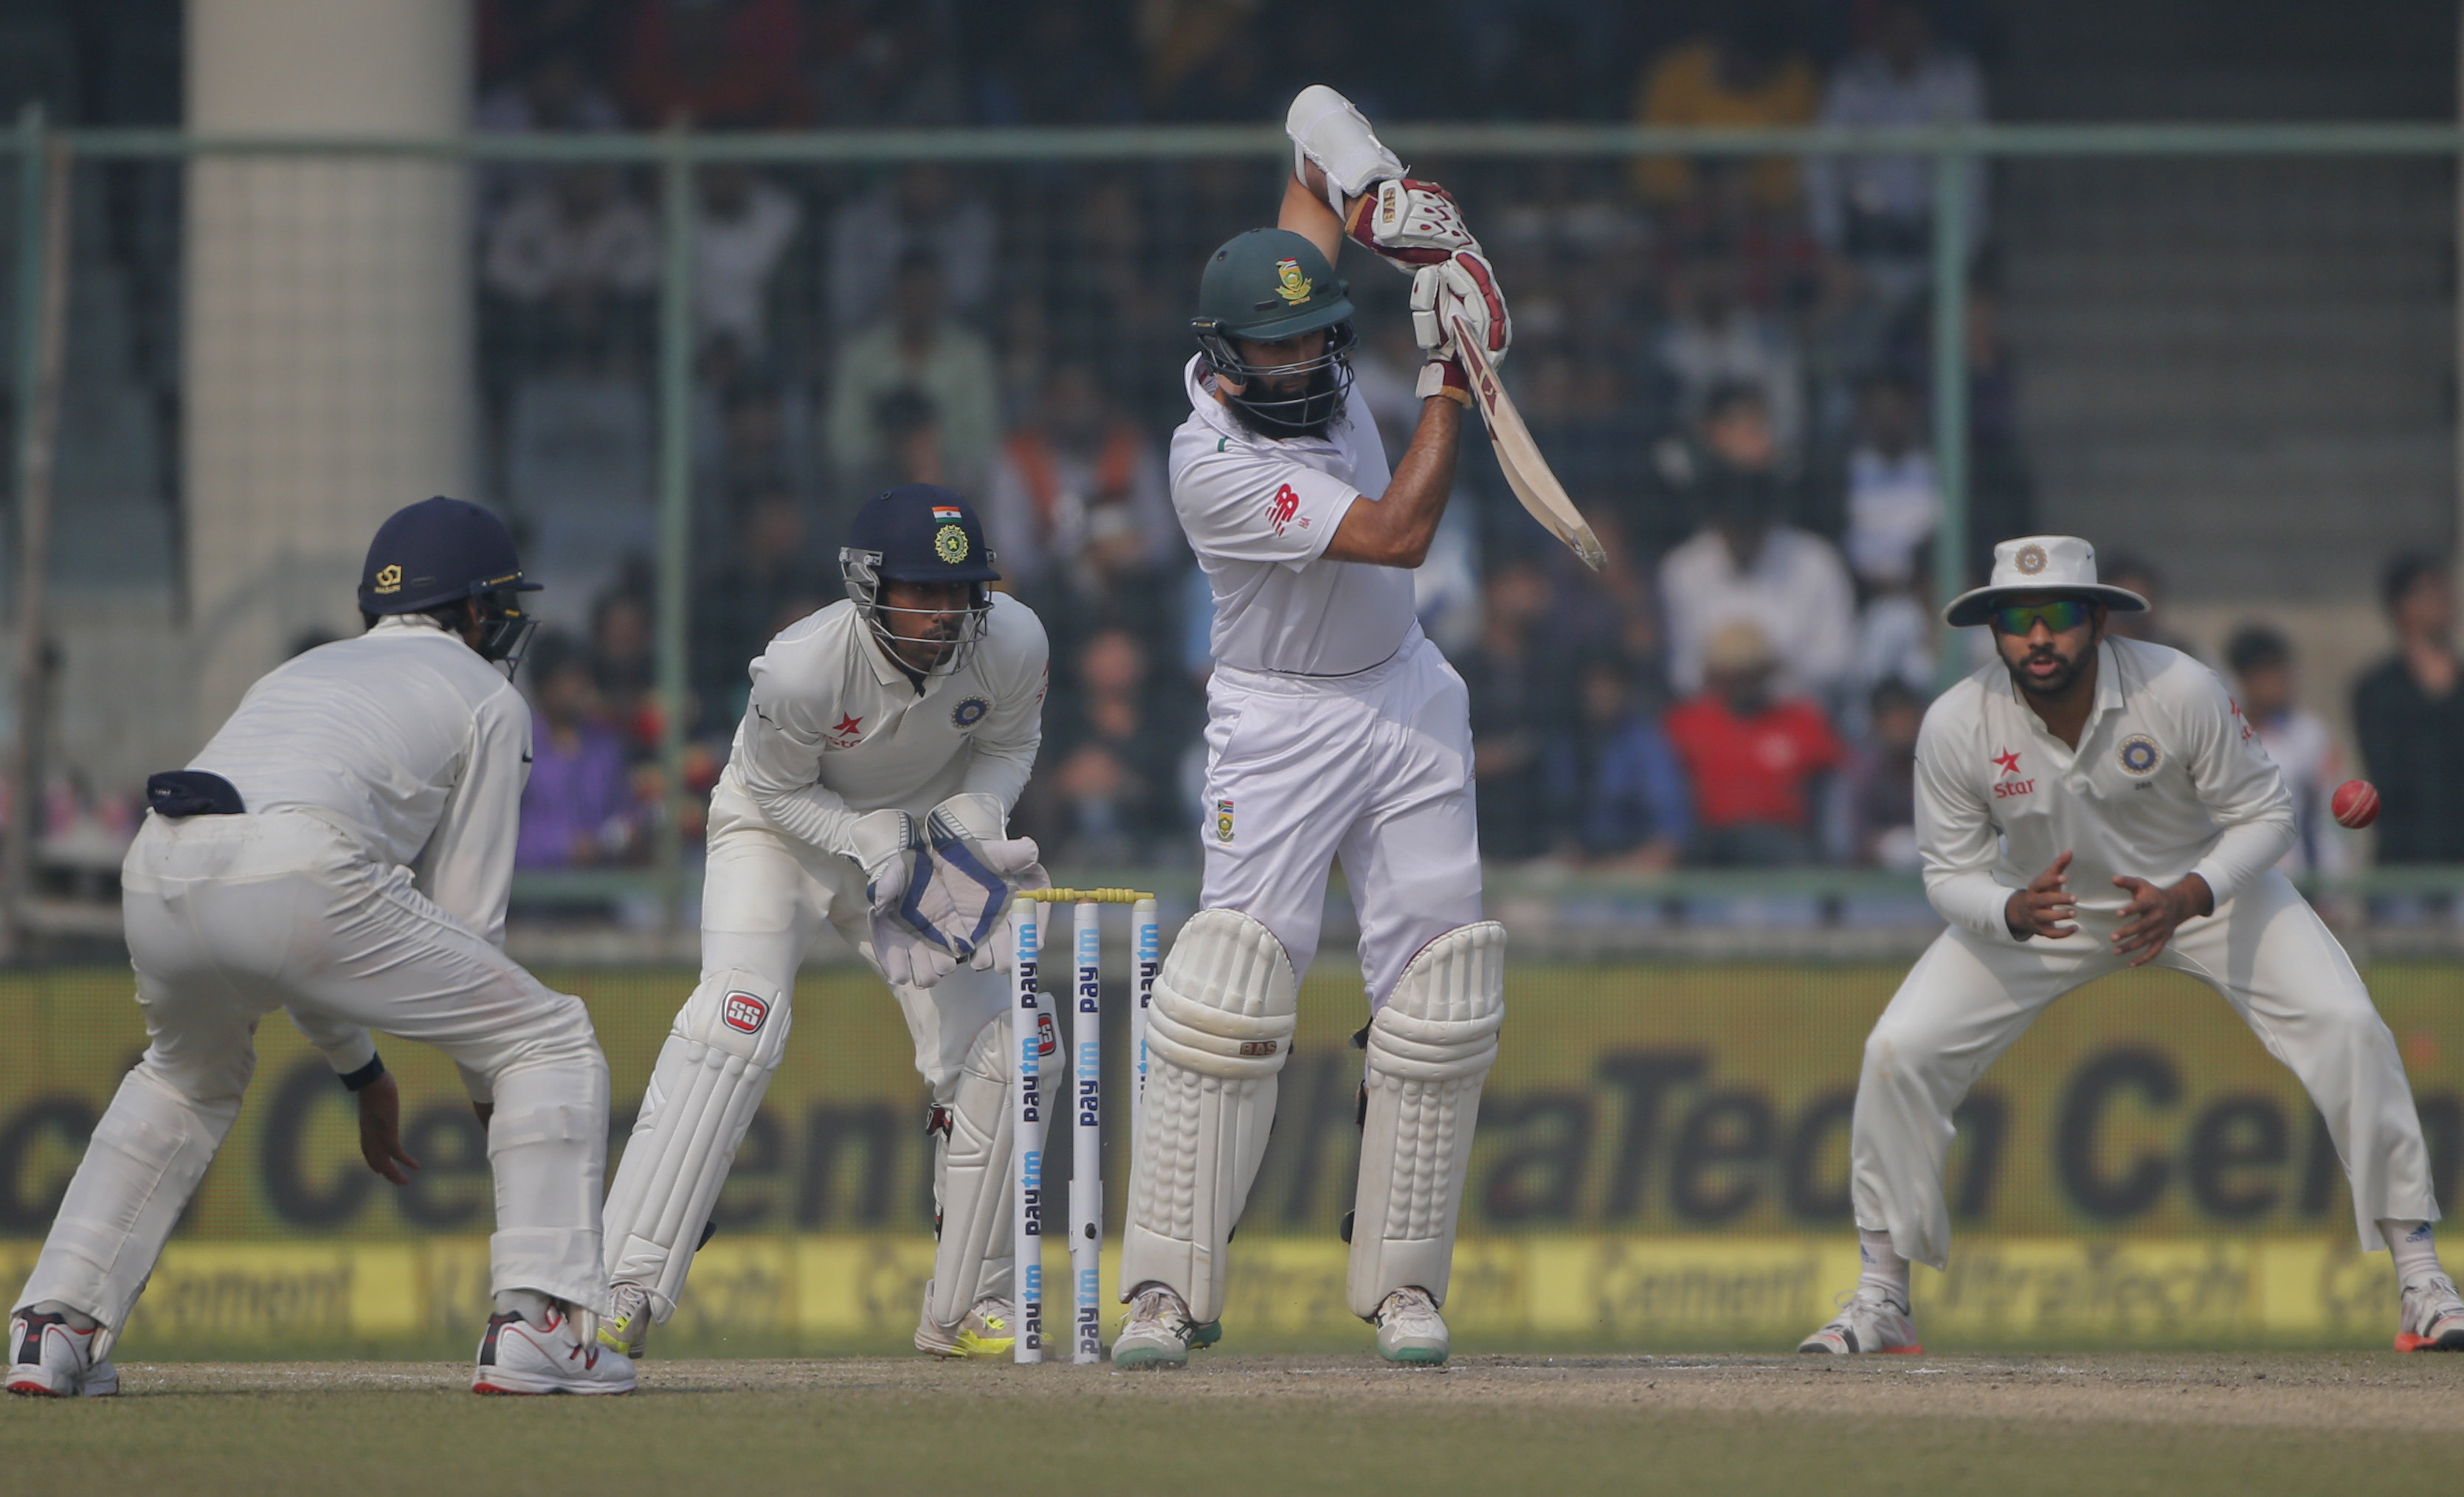 Indian fielders watch as South Africa's captain Hashim Amla bats on day four of their fourth and final test cricket match in New Delhi, India, Sunday, December 6, 2015. Photo: AP